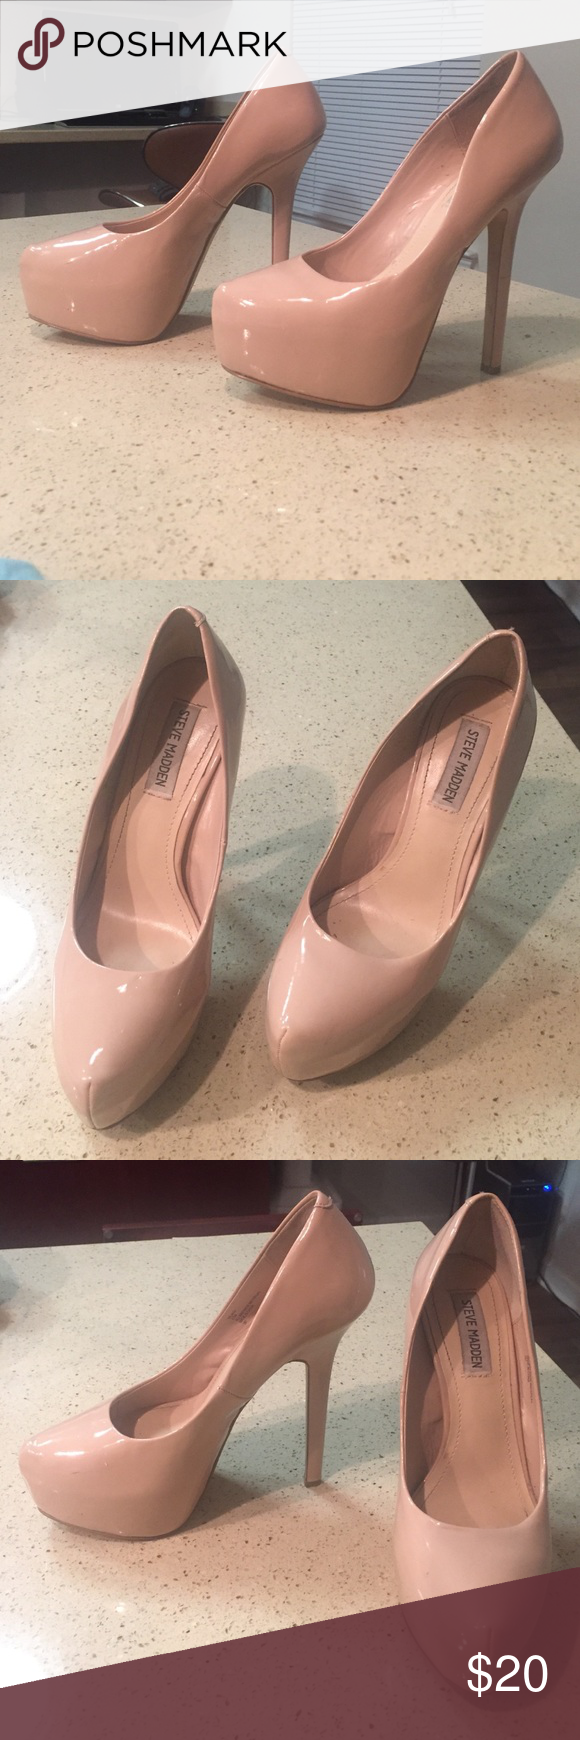 NUDE STEVE MADDEN DEJAVU PUMPS SIZE 8.5 Size 8.5 Steve Madden dejavu pump / minor scuffs // worn twice Steve Madden Shoes Heels